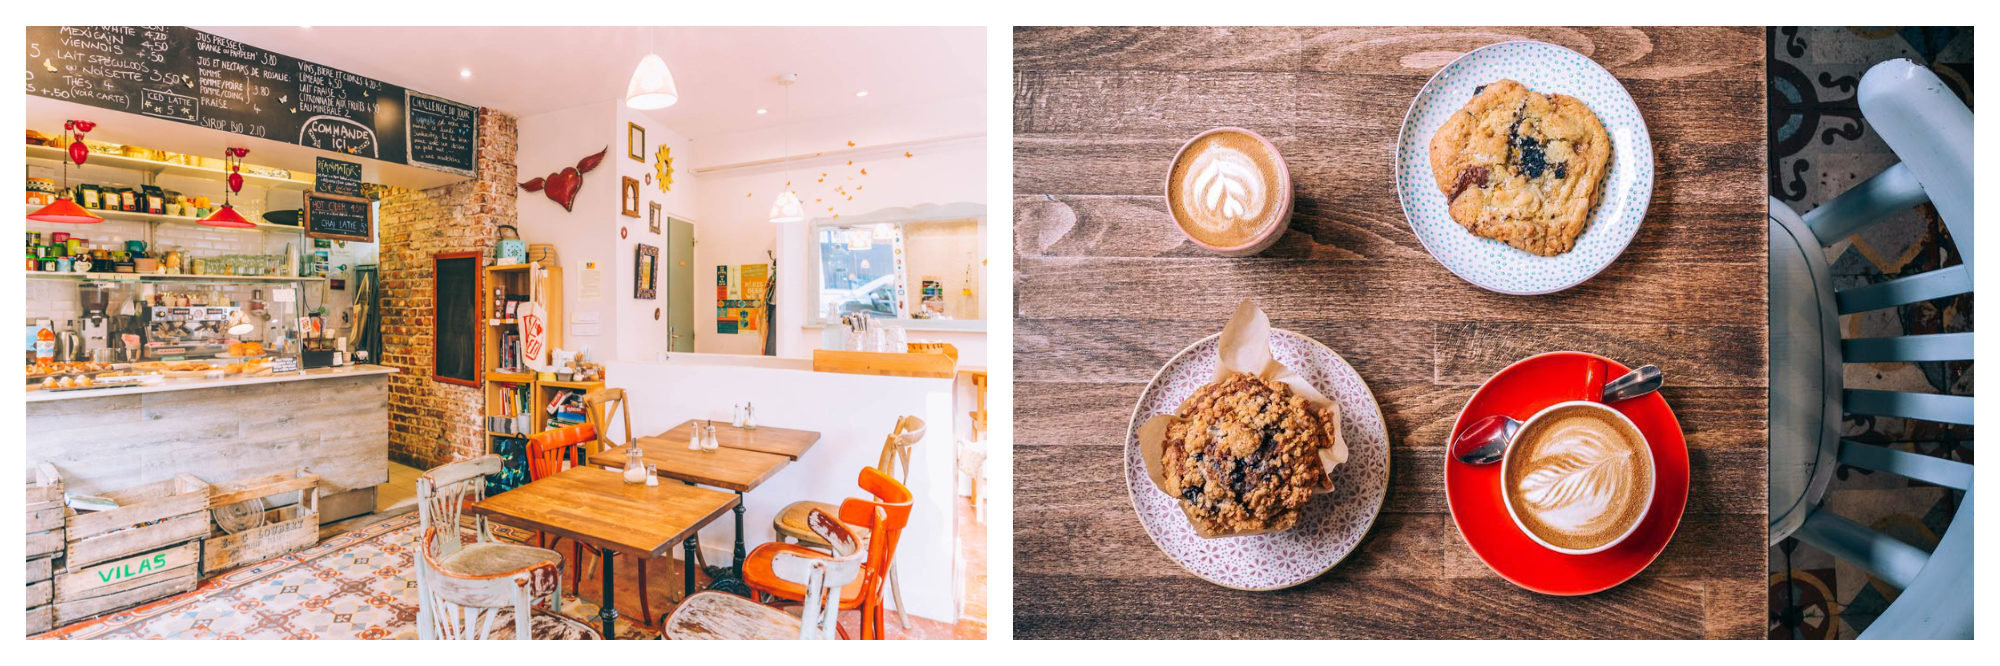 Inside Soul Kitchen, which is open all day Sunday in Montmartre in Paris (left). Cakes and coffee on a wooden table at Soul Kitchen in Montmartre (right).